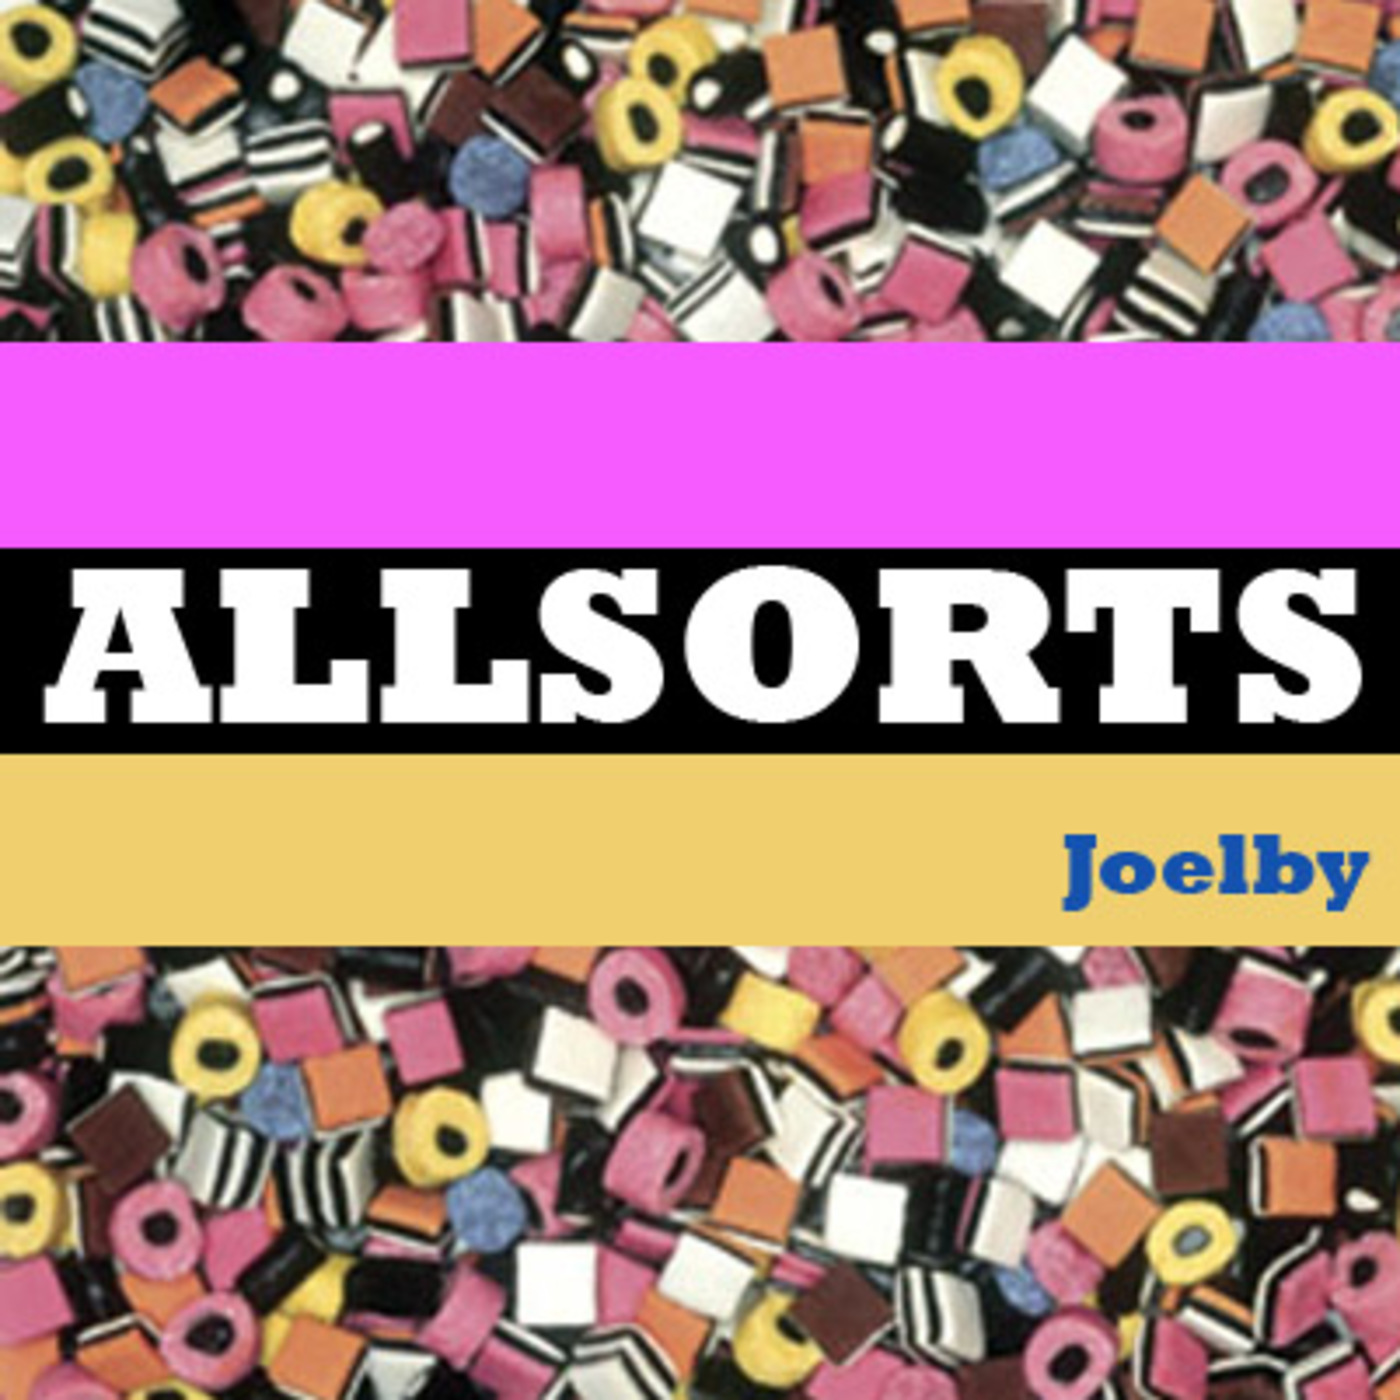 17 allsorts joelby 39 s funky vocal house podcast for Funky house anthems